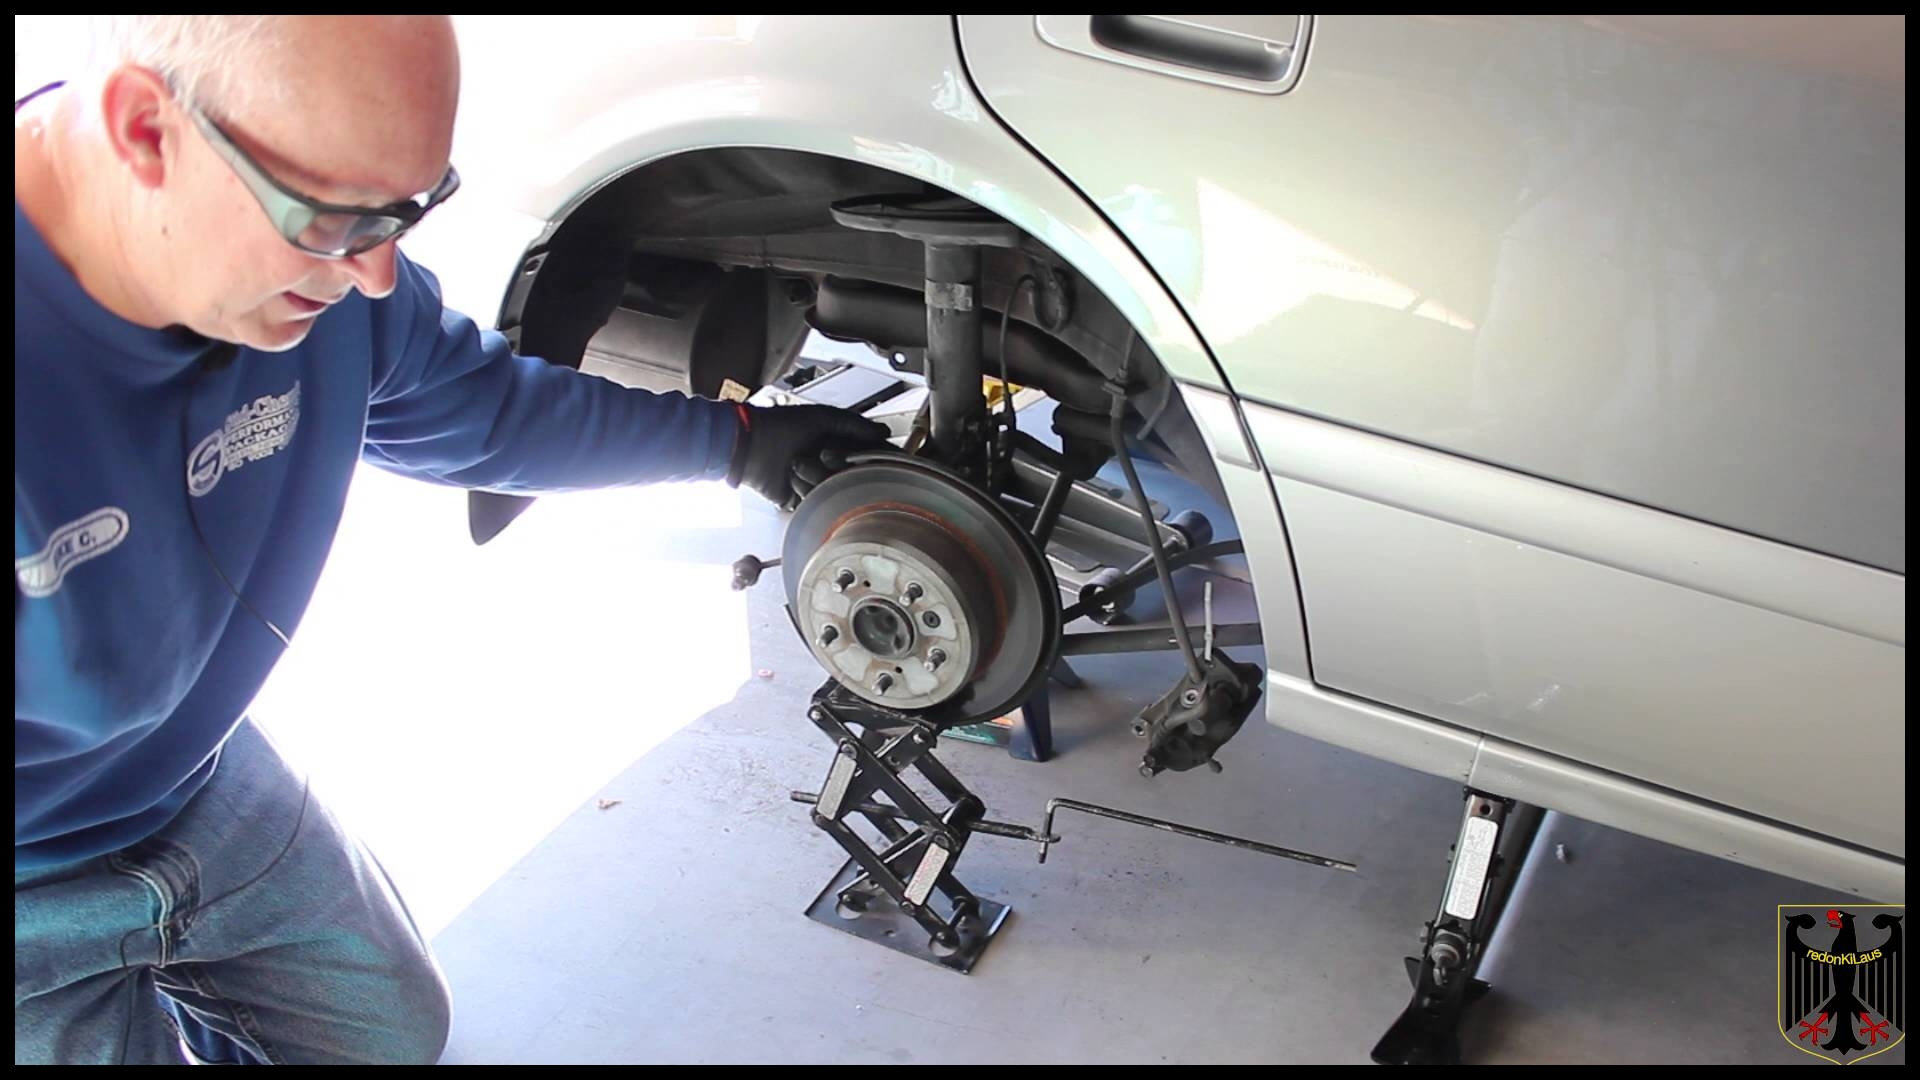 2001 Toyota Camry Rear Strut Replacement